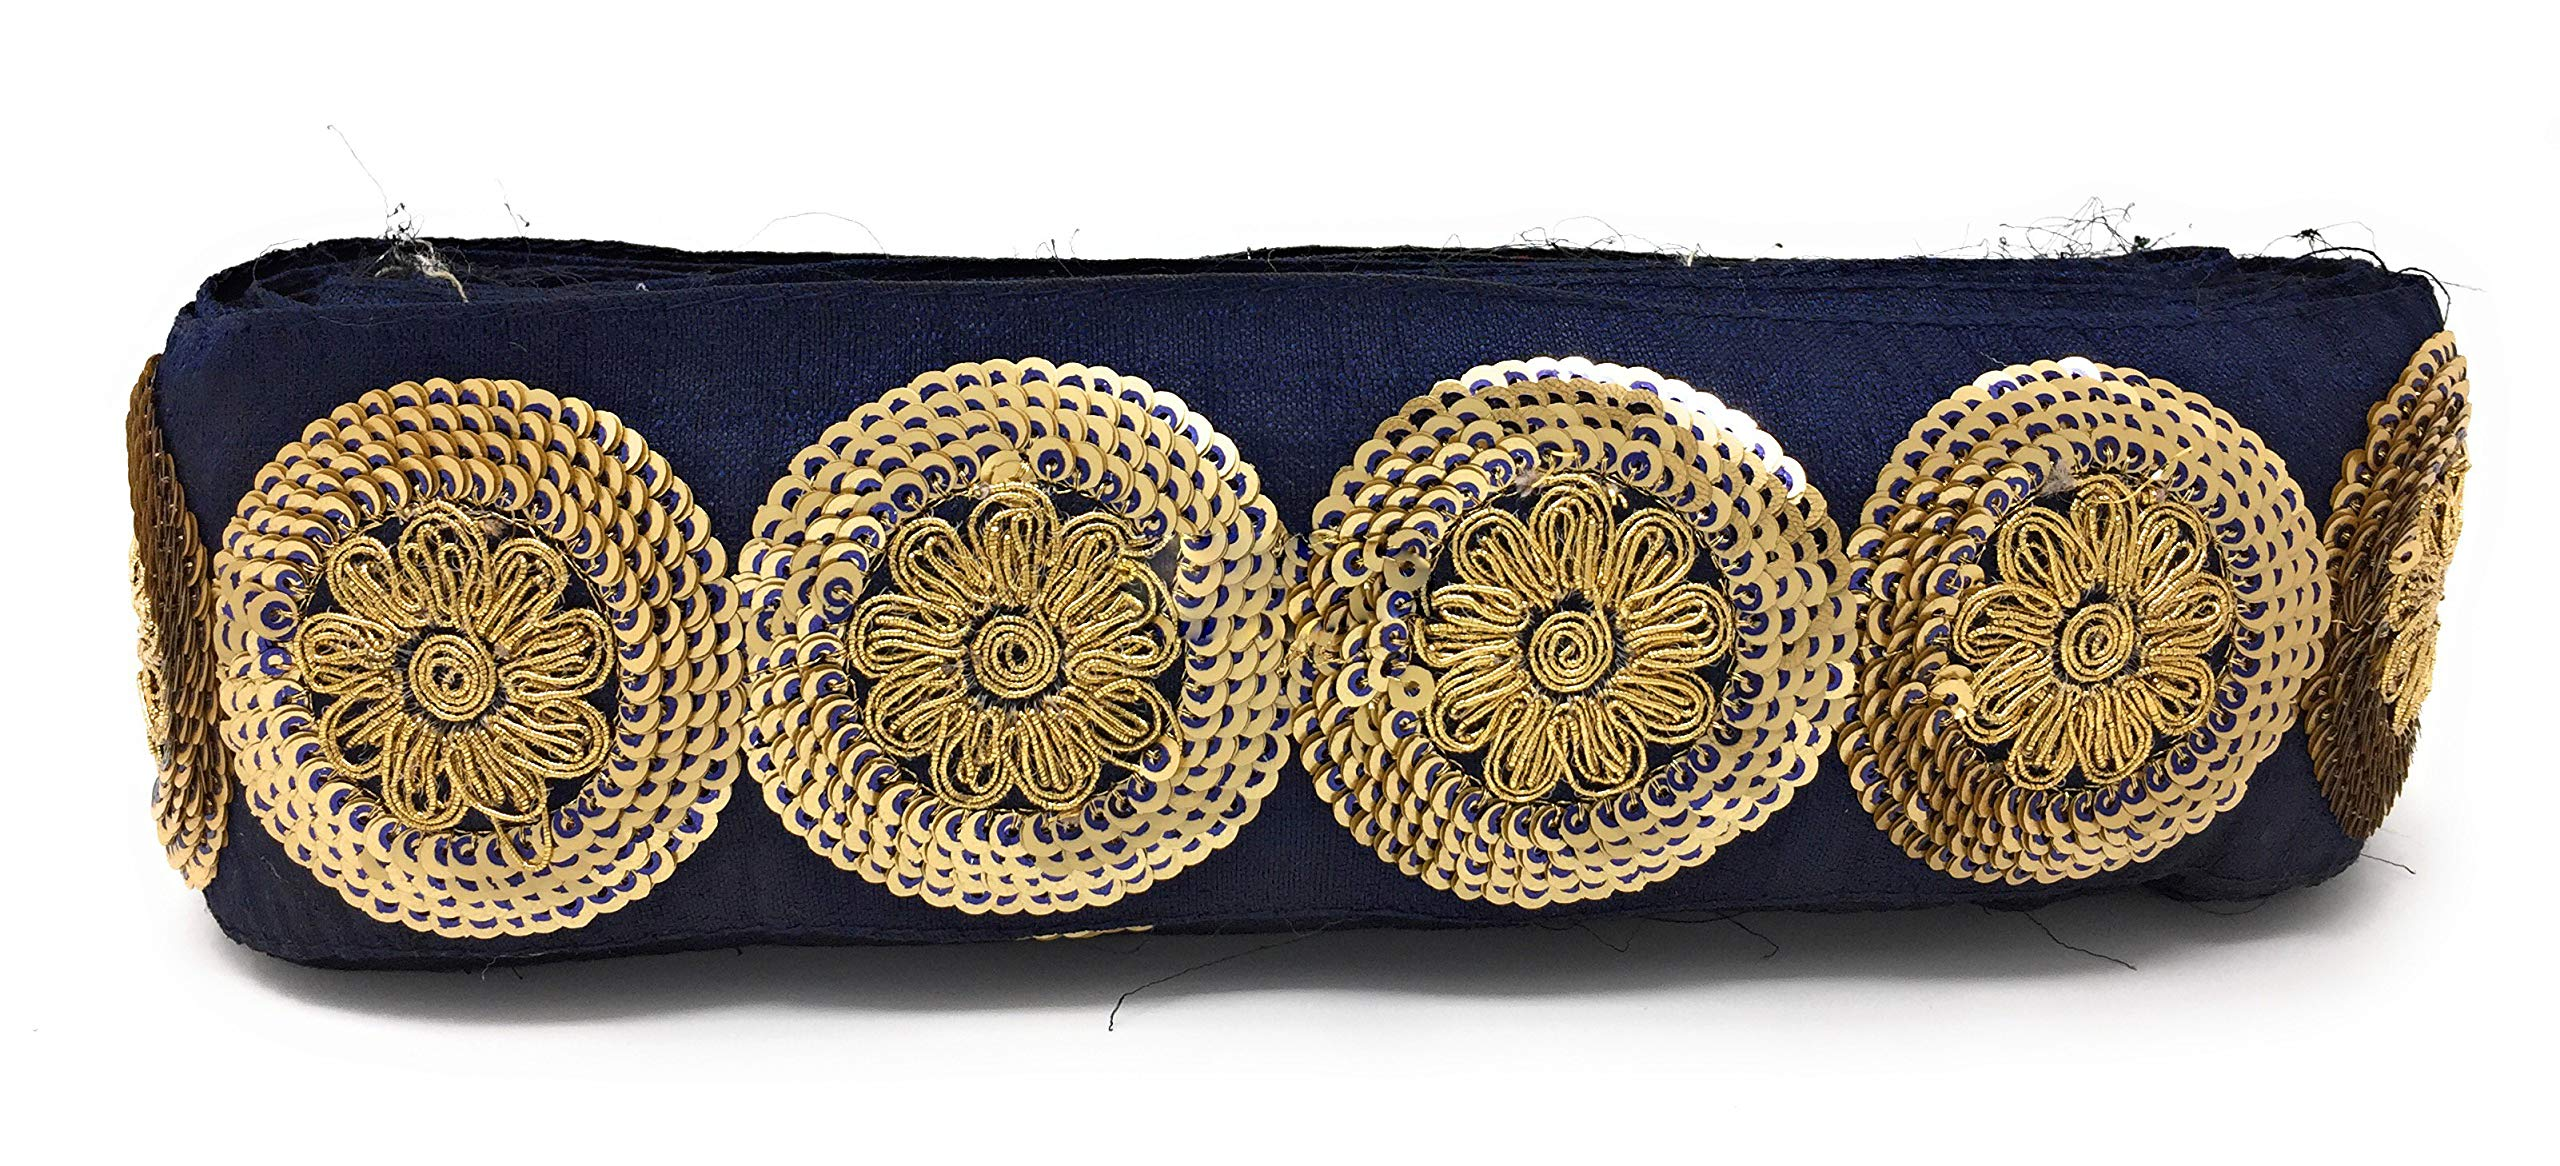 Inhika 9 Yard lace Border Trim for Women Saree Dupatta Navy Blue Colour Gold, Pearl Gold, Blue Embroidery, Sequins, Cotton Mix Material Medium Width at 7 cm Wide by Inhika